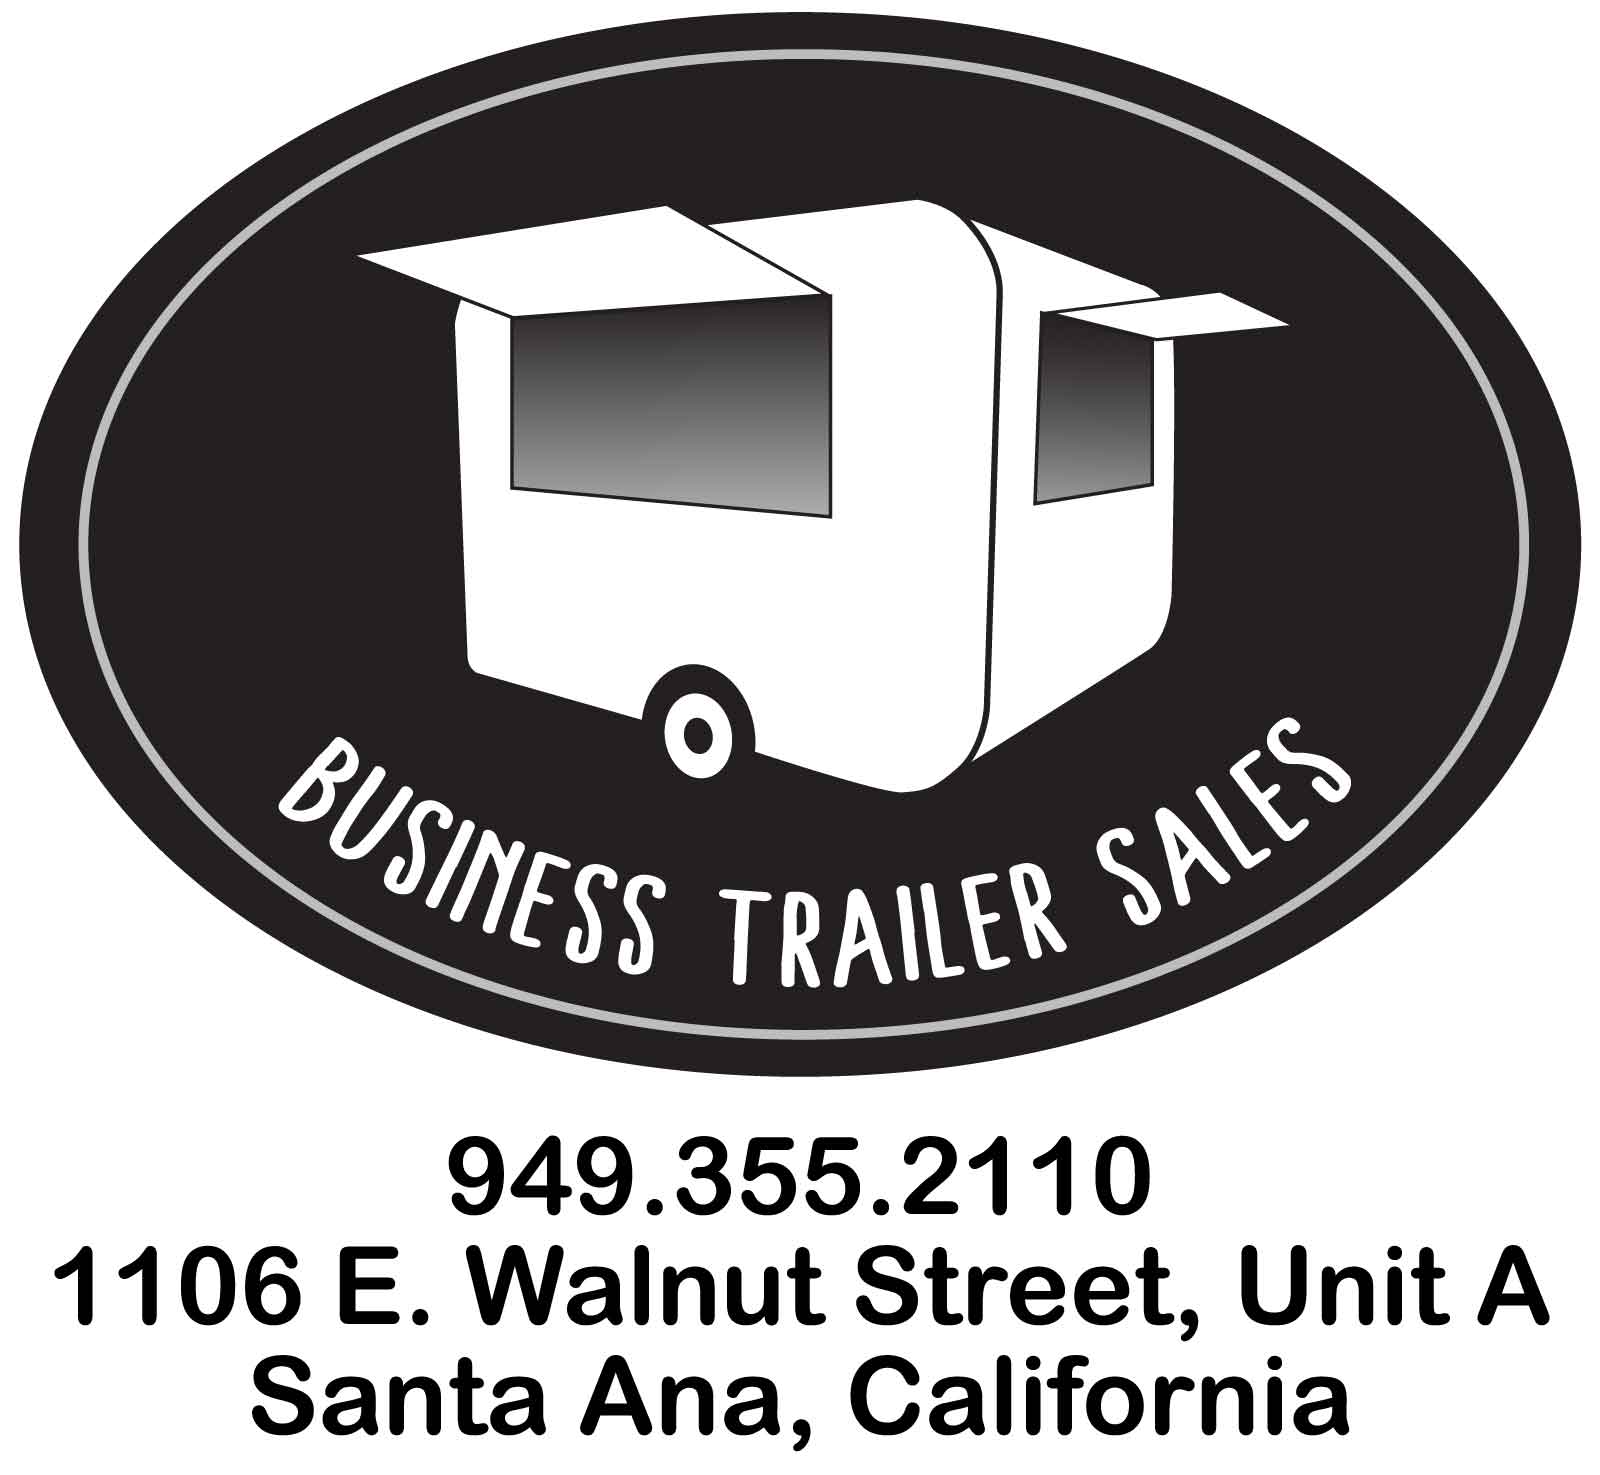 business trailer sales logo and contact information - refurbished trailers